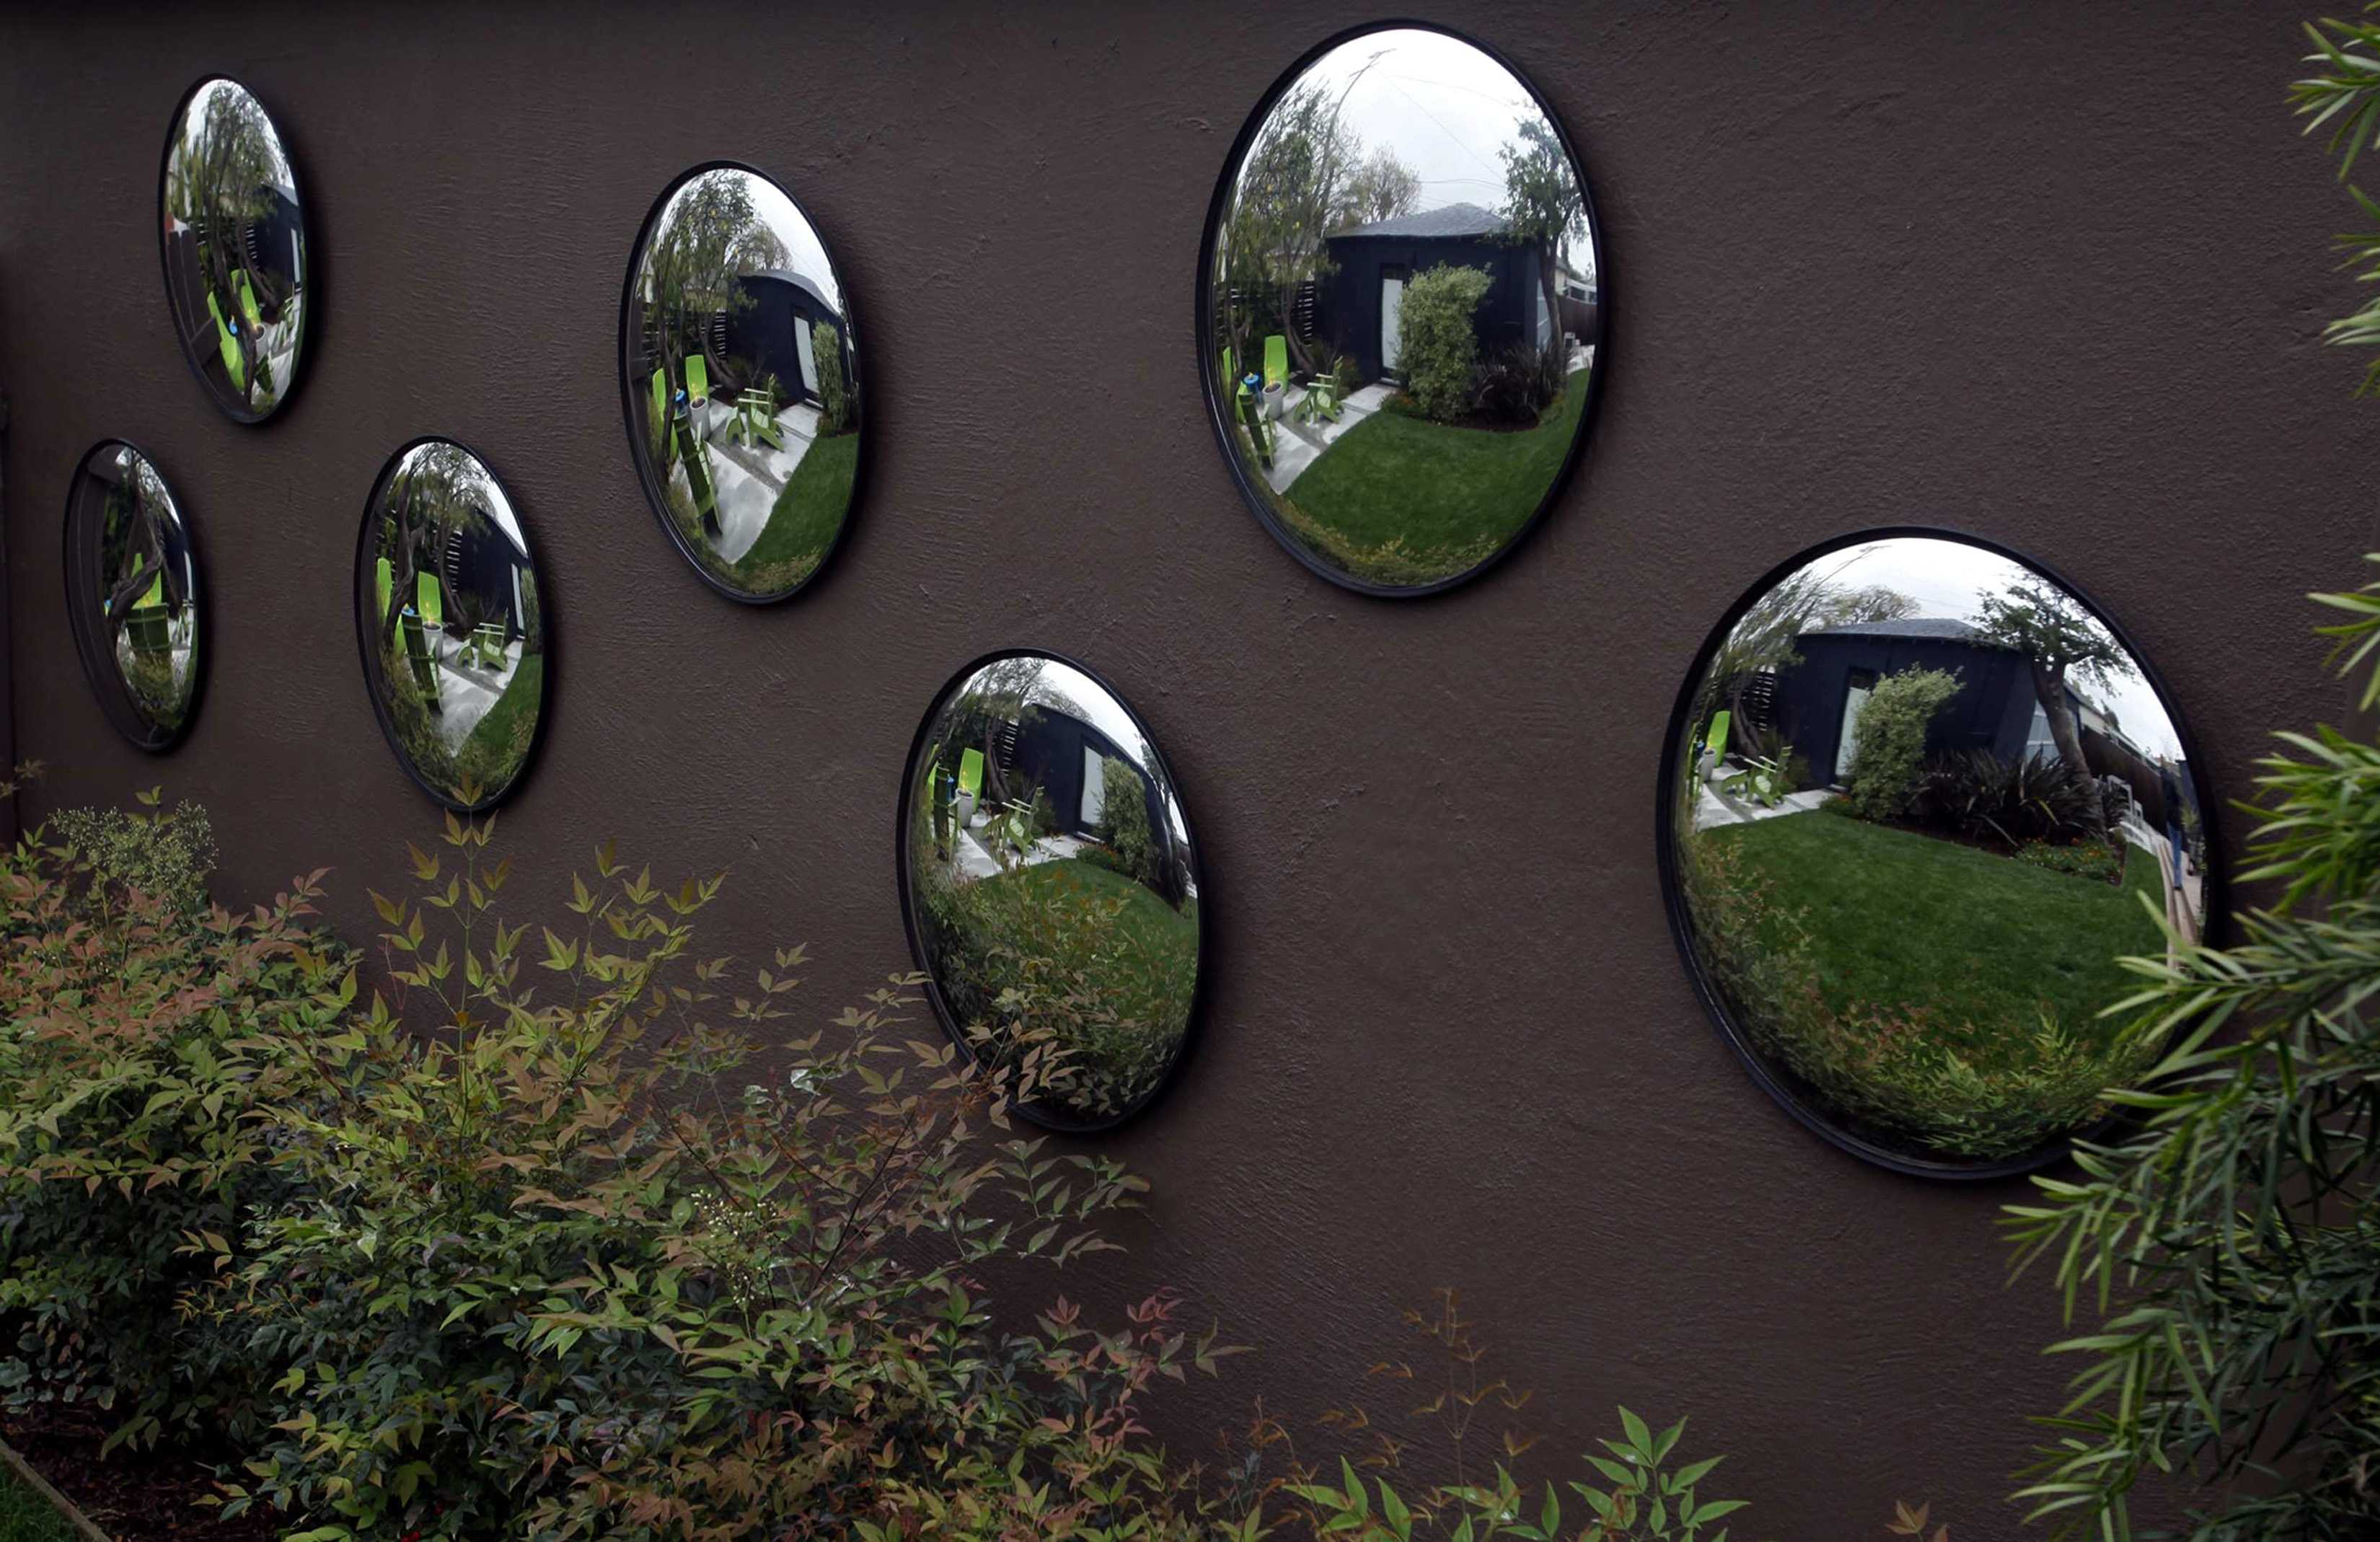 Mirrors on a wall in Jim Rash's back yard are featured March 13, 2012. Recent Oscar-winner and actor Jim Rash recently redesigned his Westside home exterior and garden spaces to create more room for entertaining. (Francine Orr/Los Angeles Times/MCT)